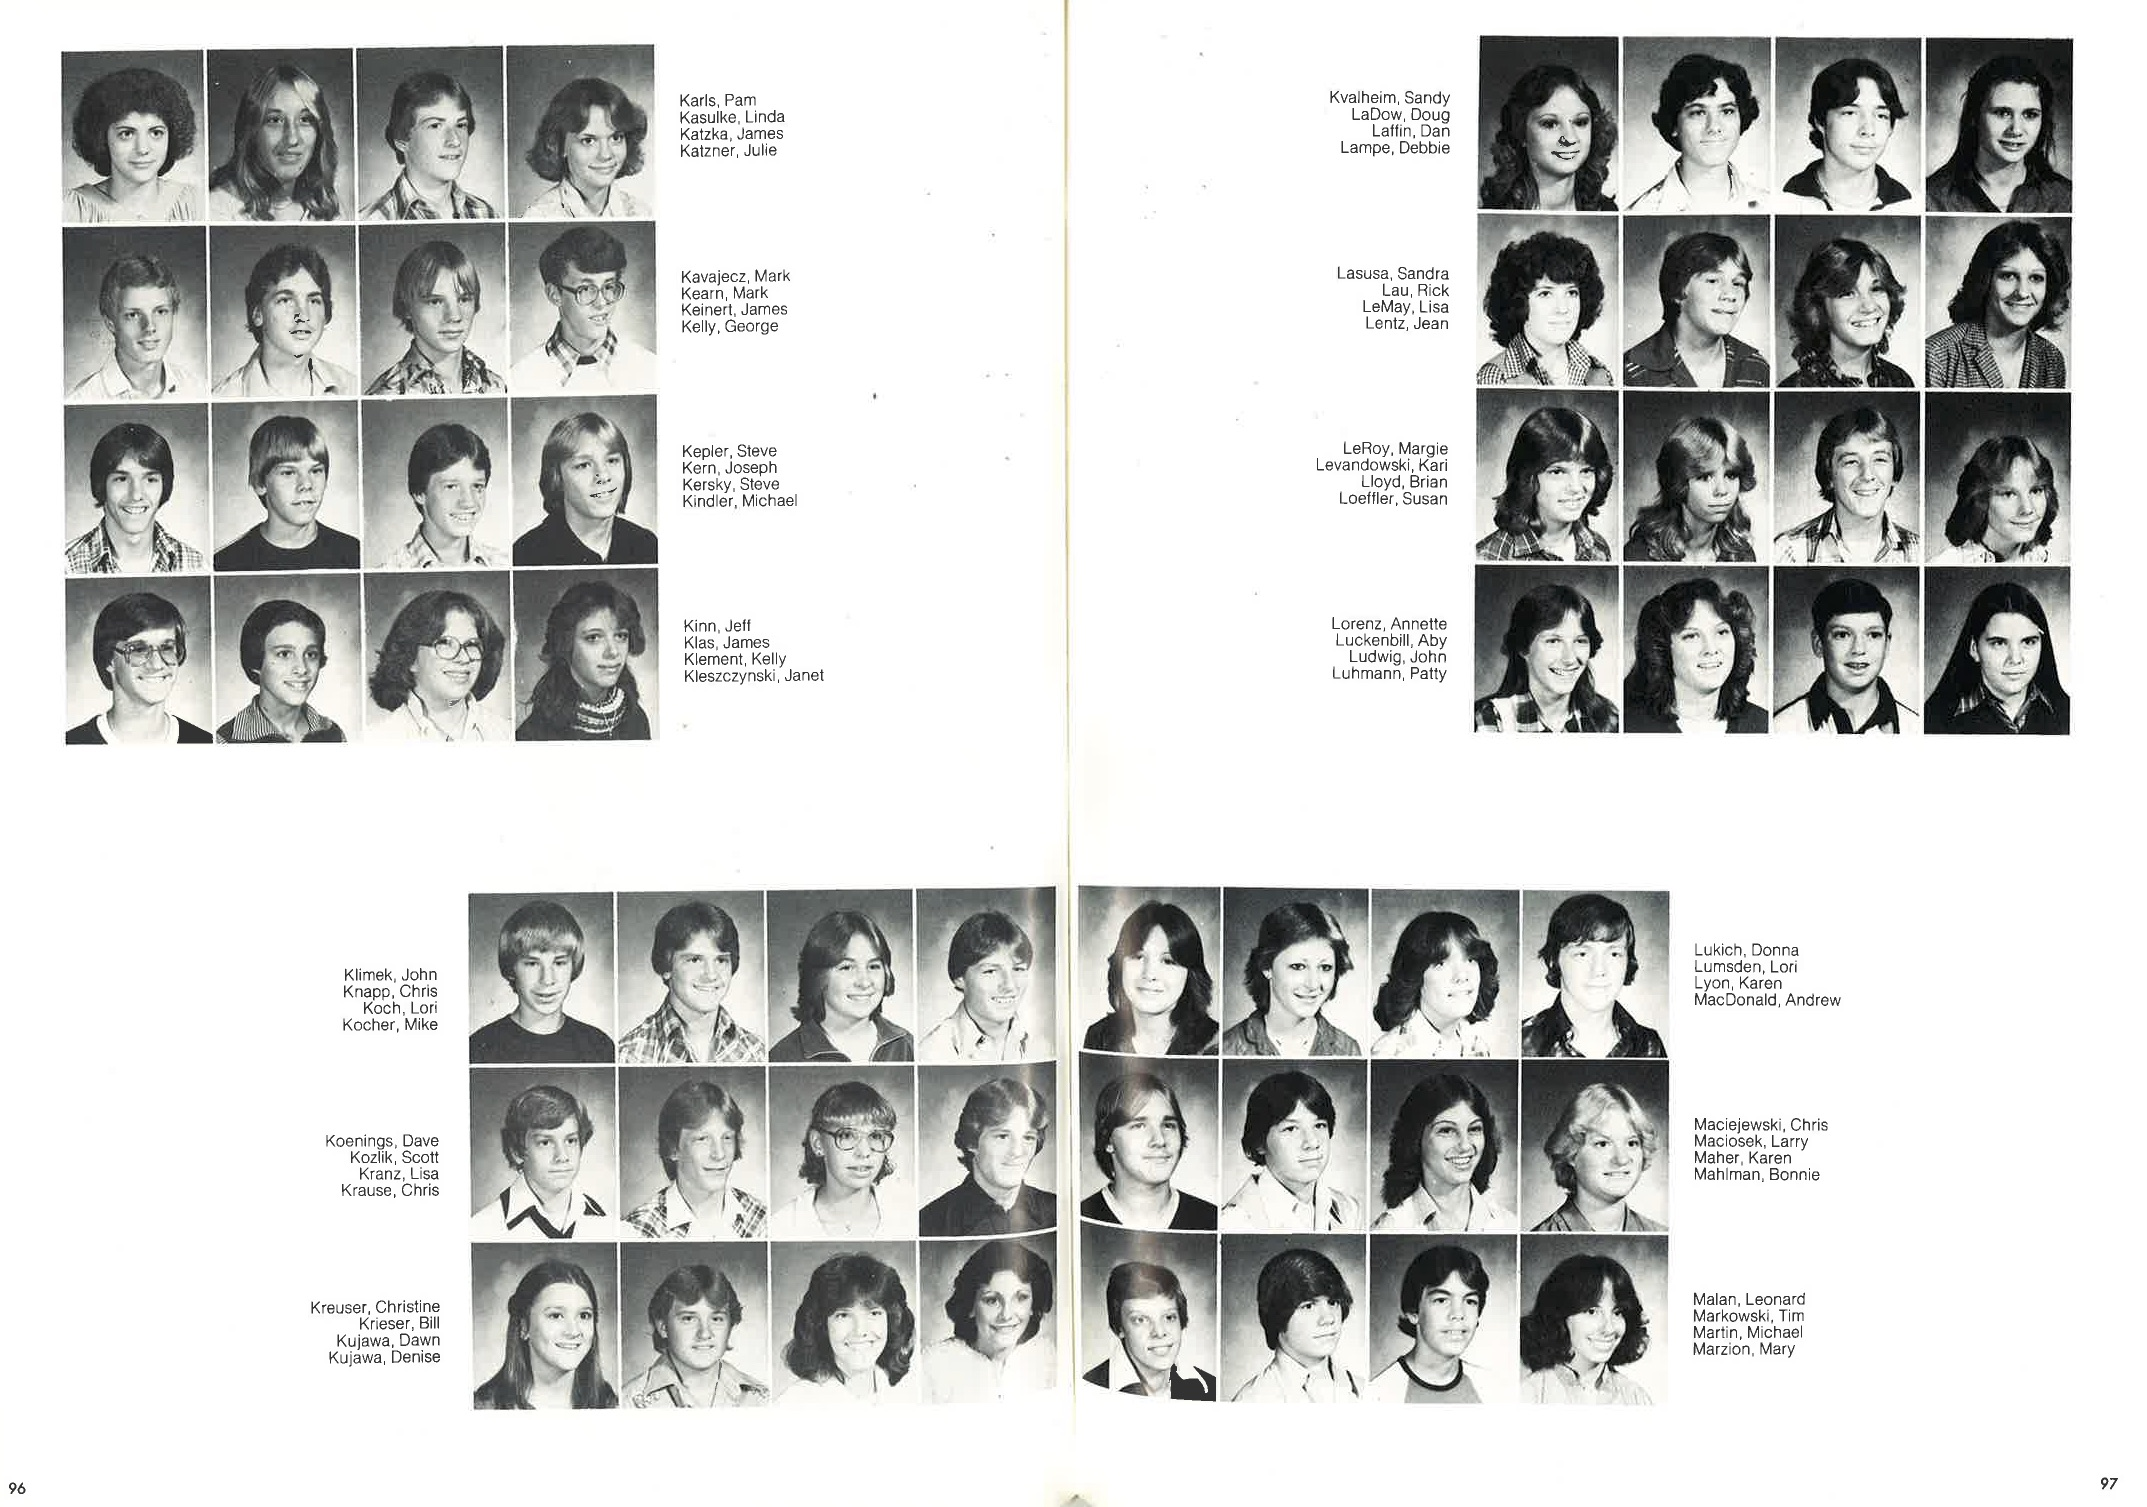 1980_Yearbook_96.jpg